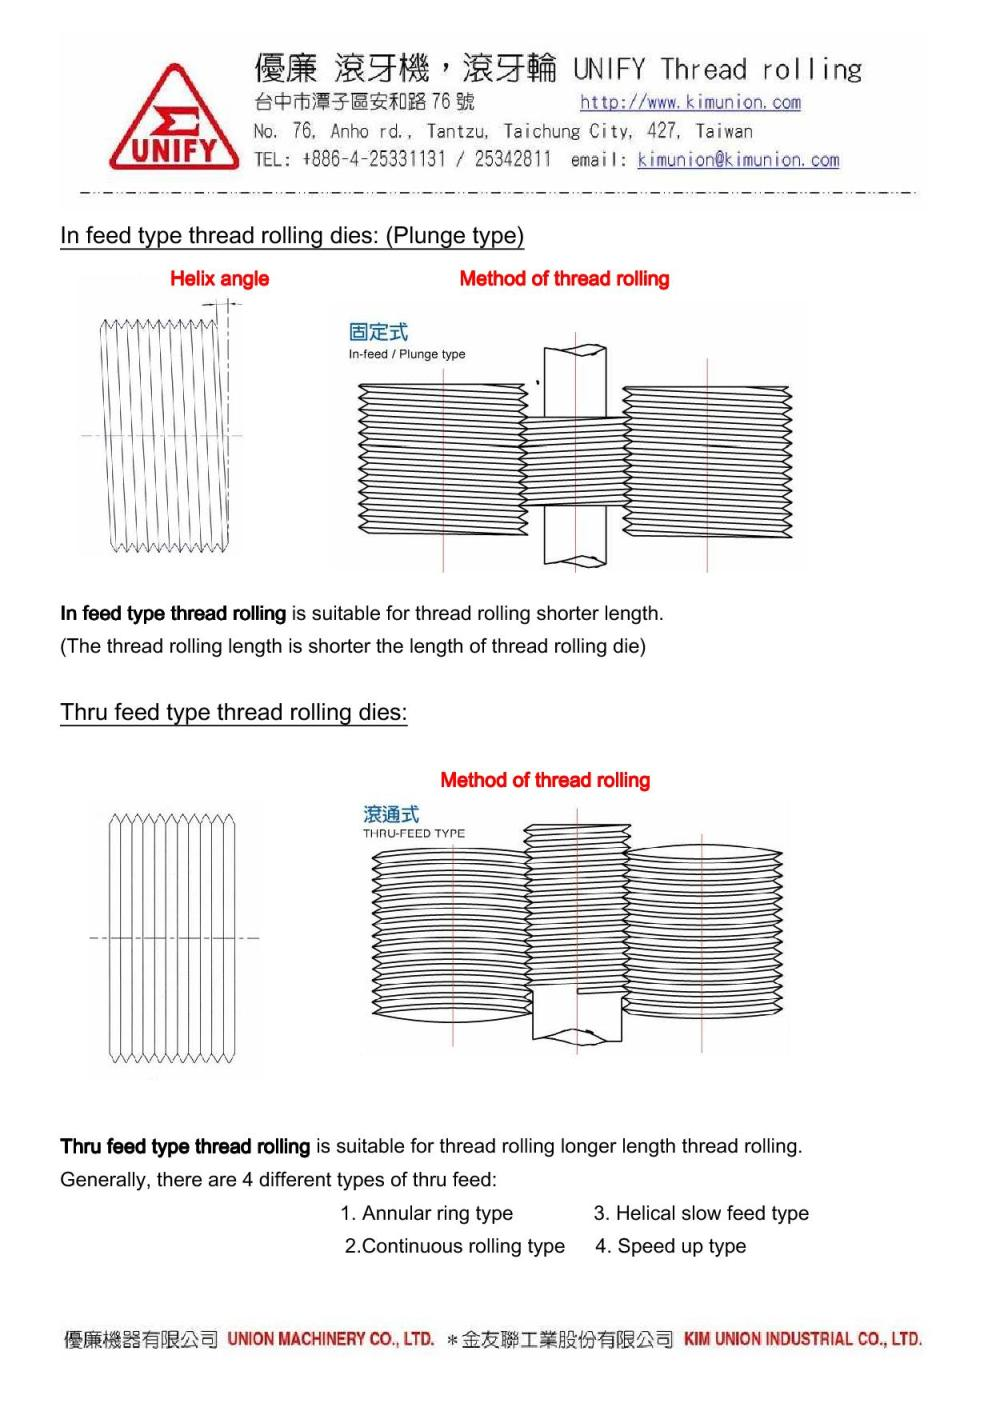 The difference of In feed type (Plunge) & Thru feed type thread rolling dies